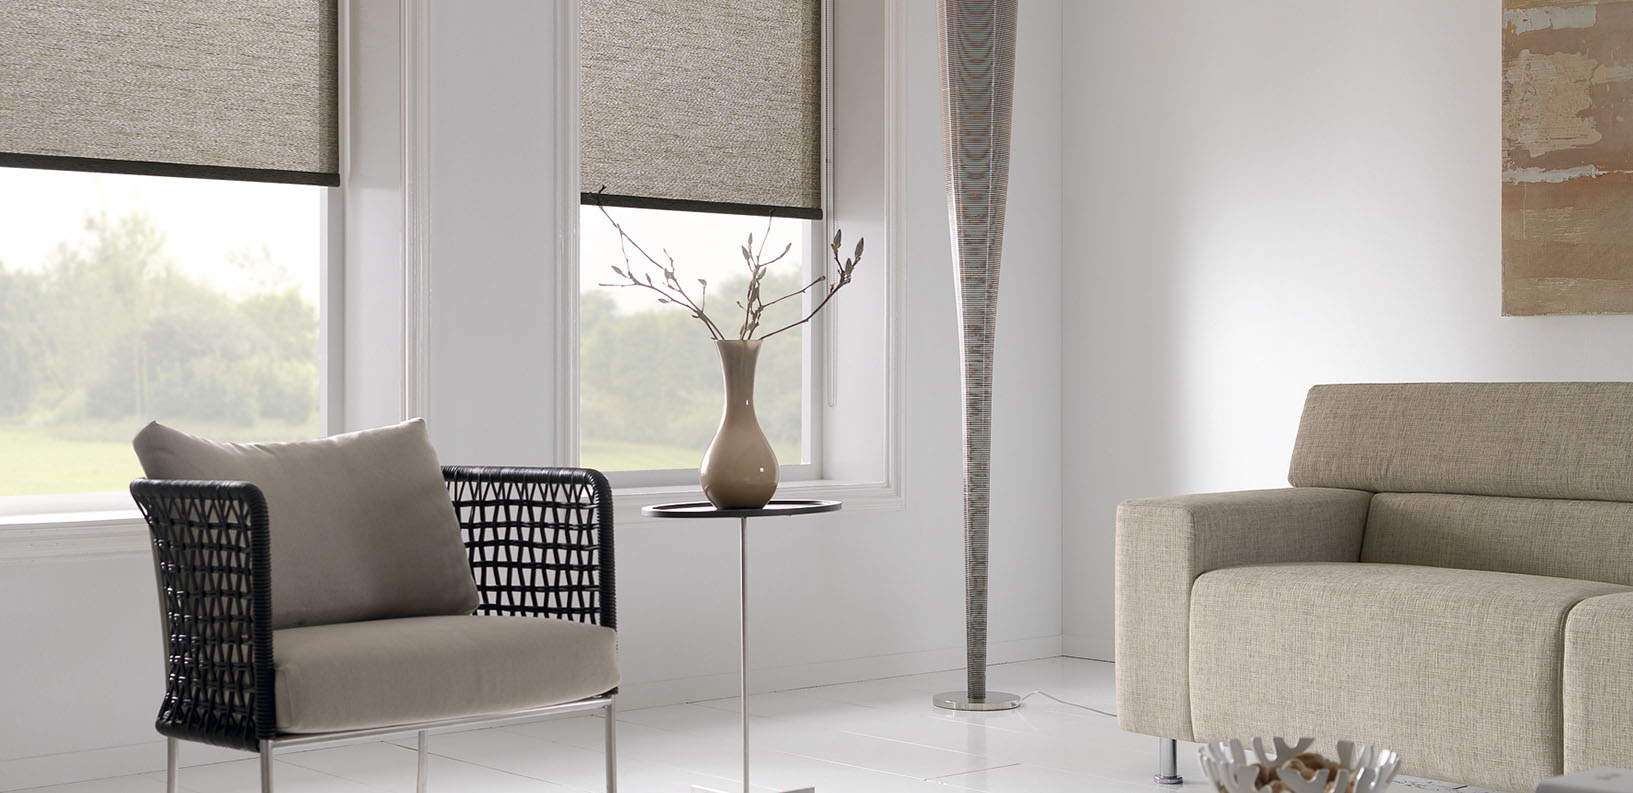 Roller Blinds | Inspiration Gallery | Luxaflex®